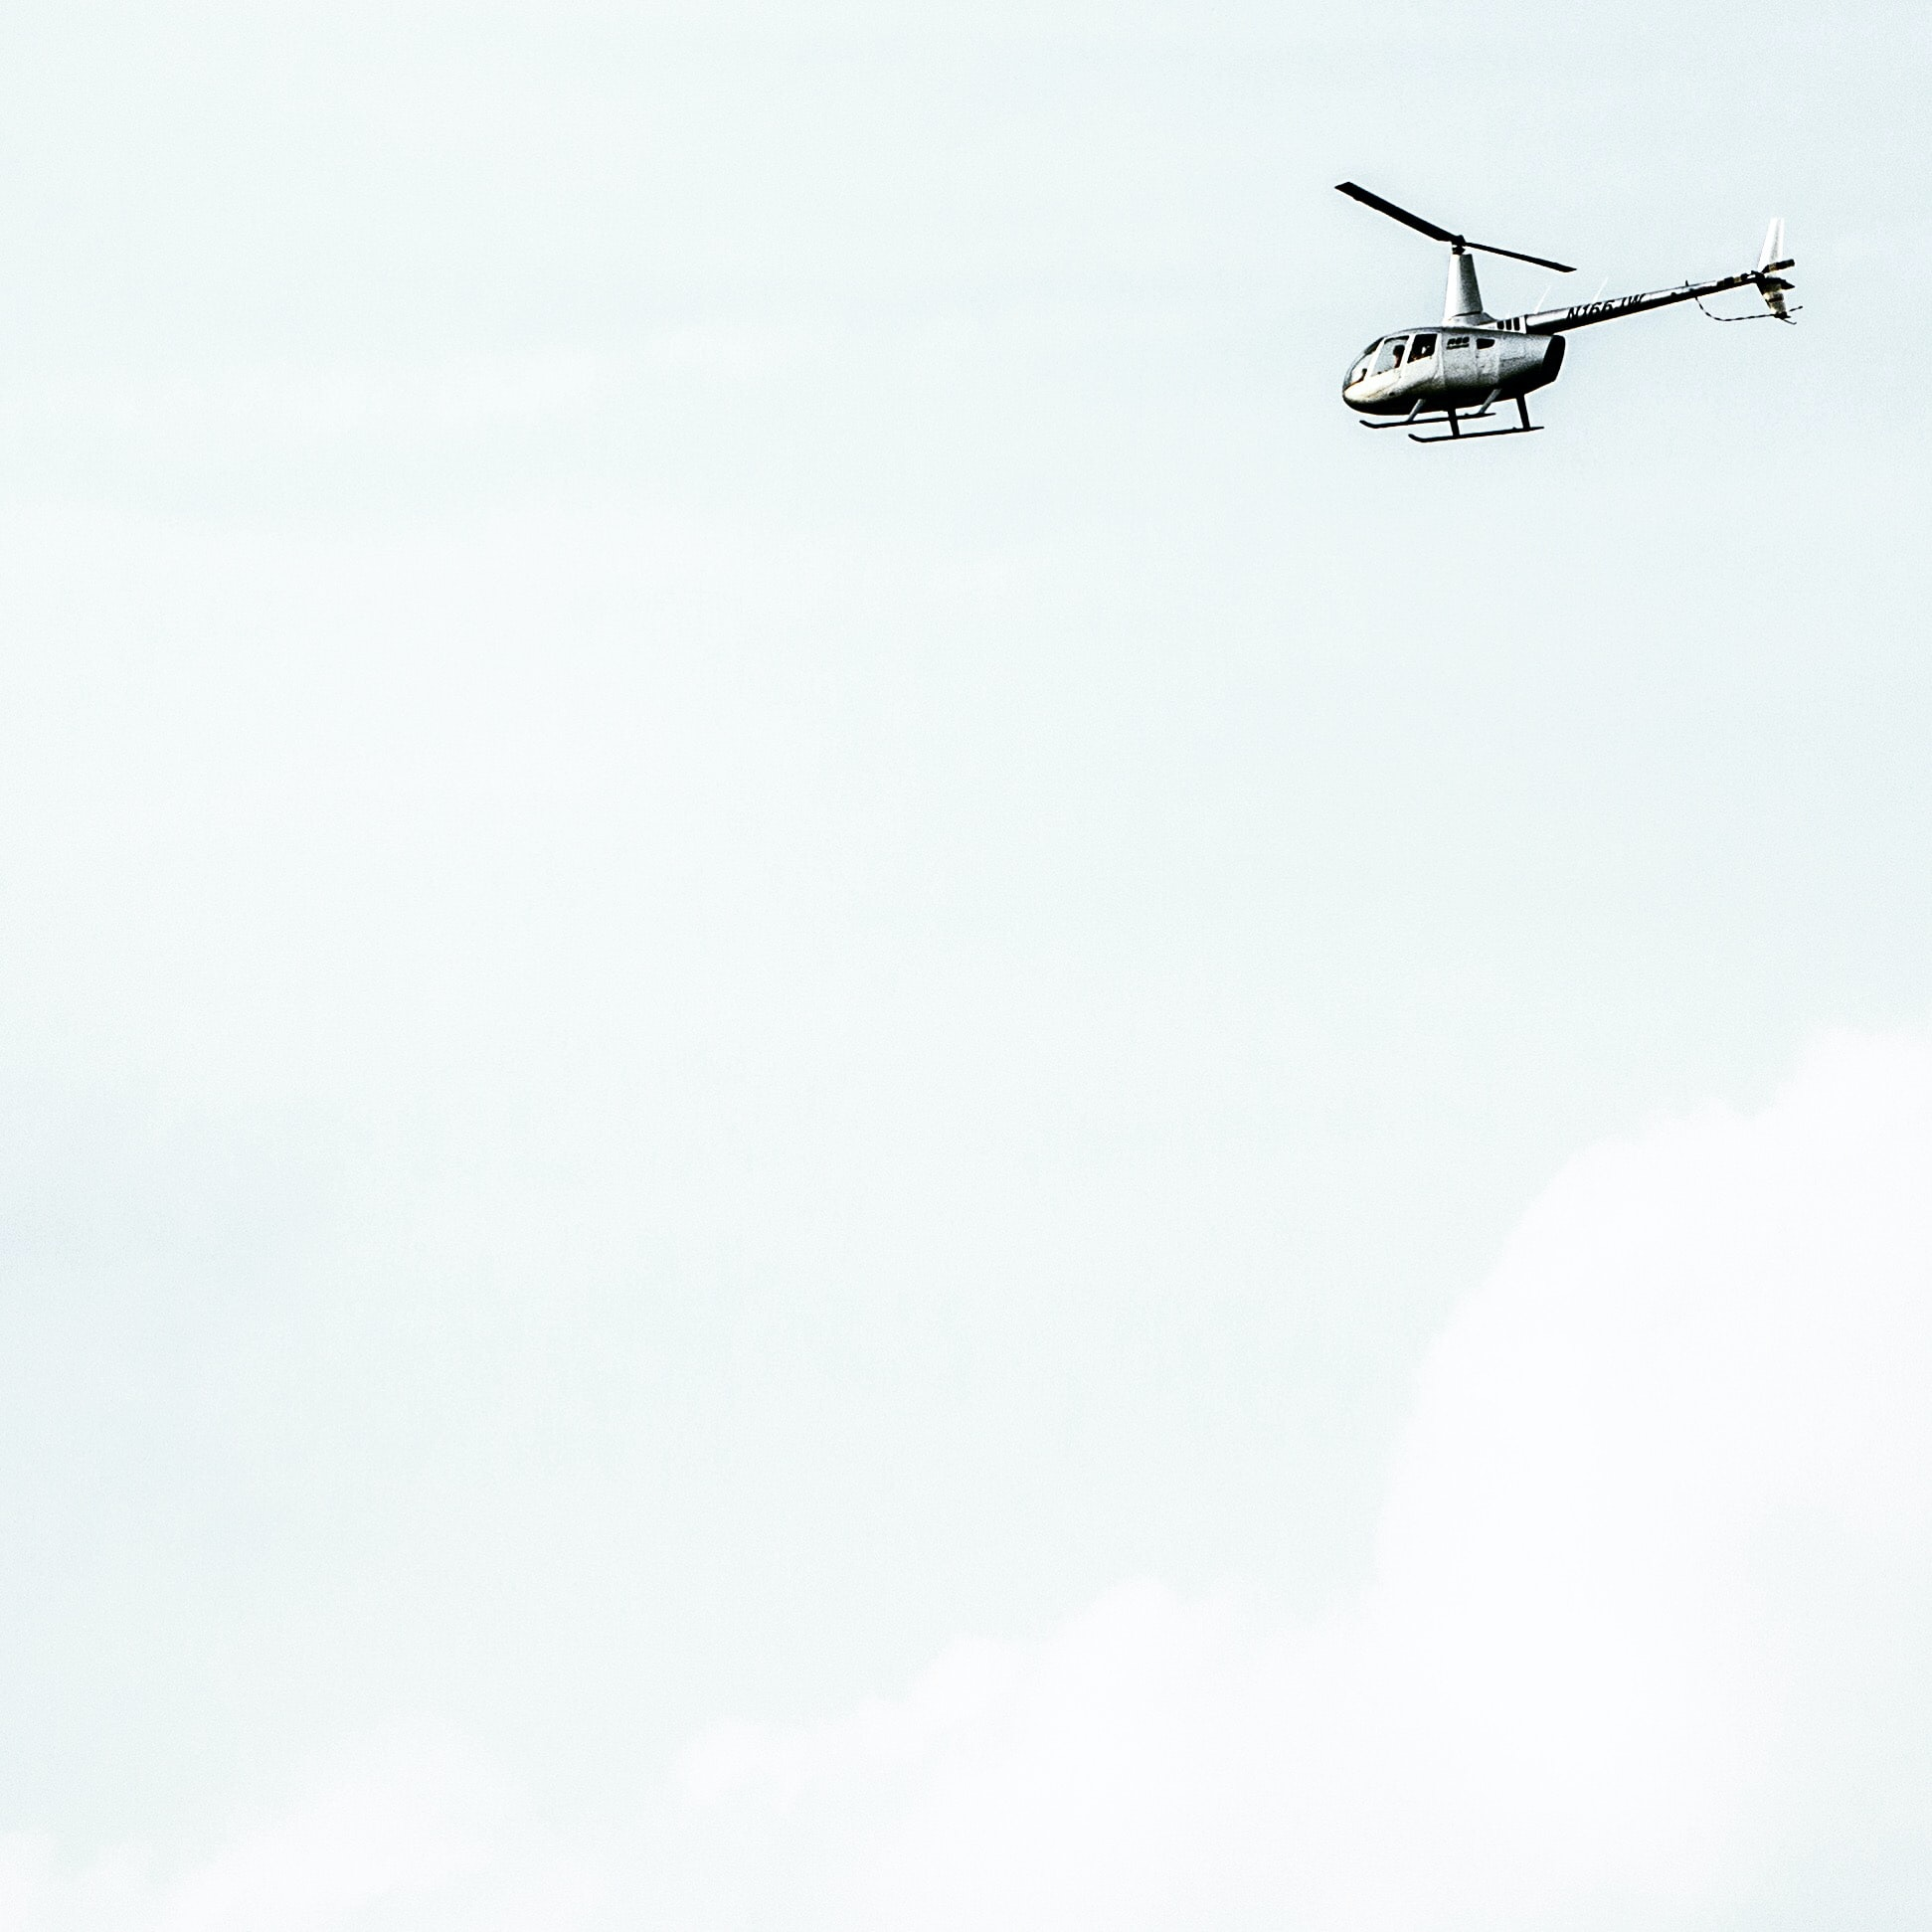 A white helicopter against a pale sky